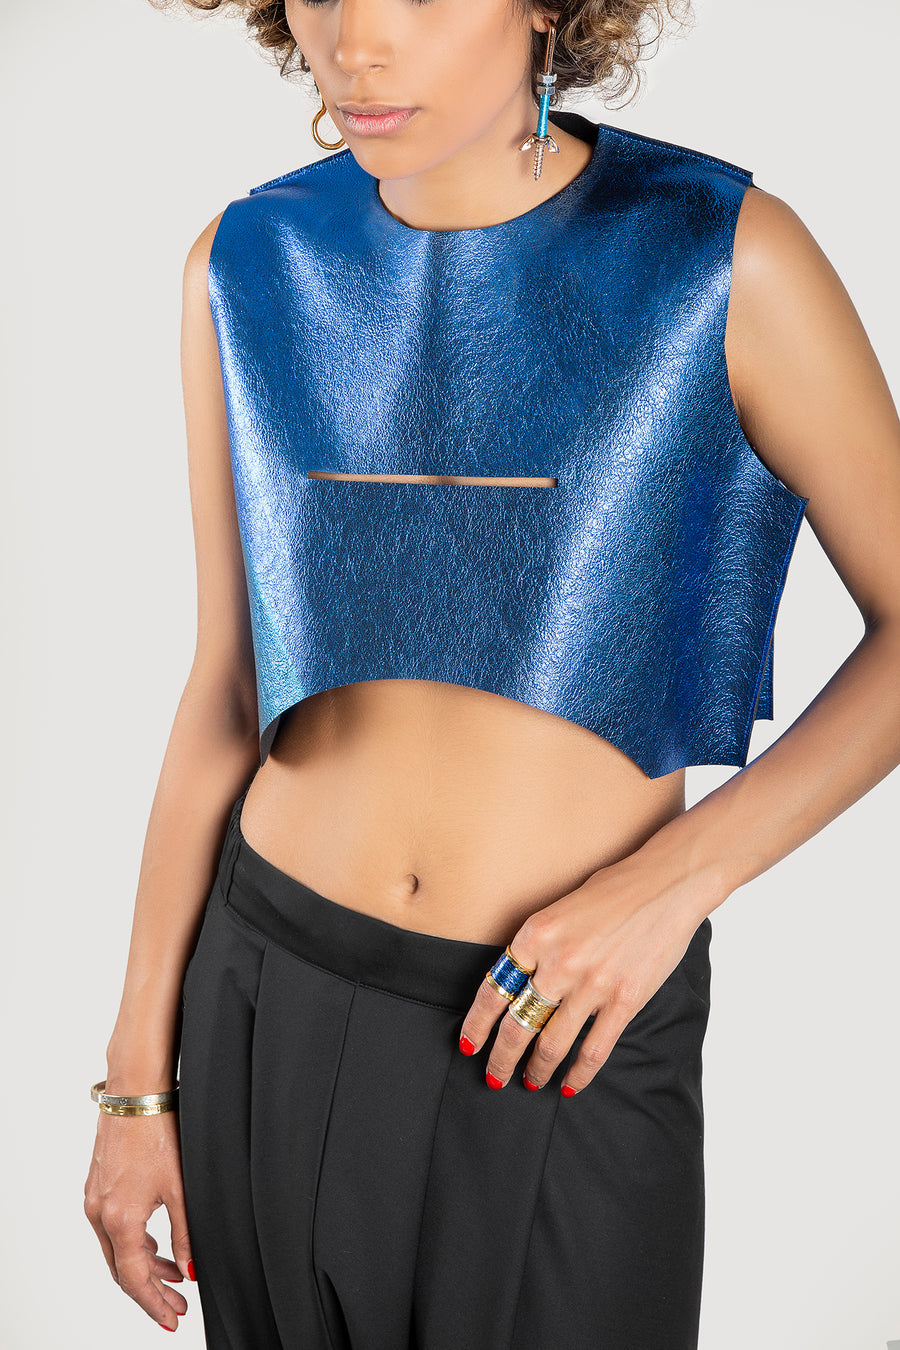 Metallic Blue Top